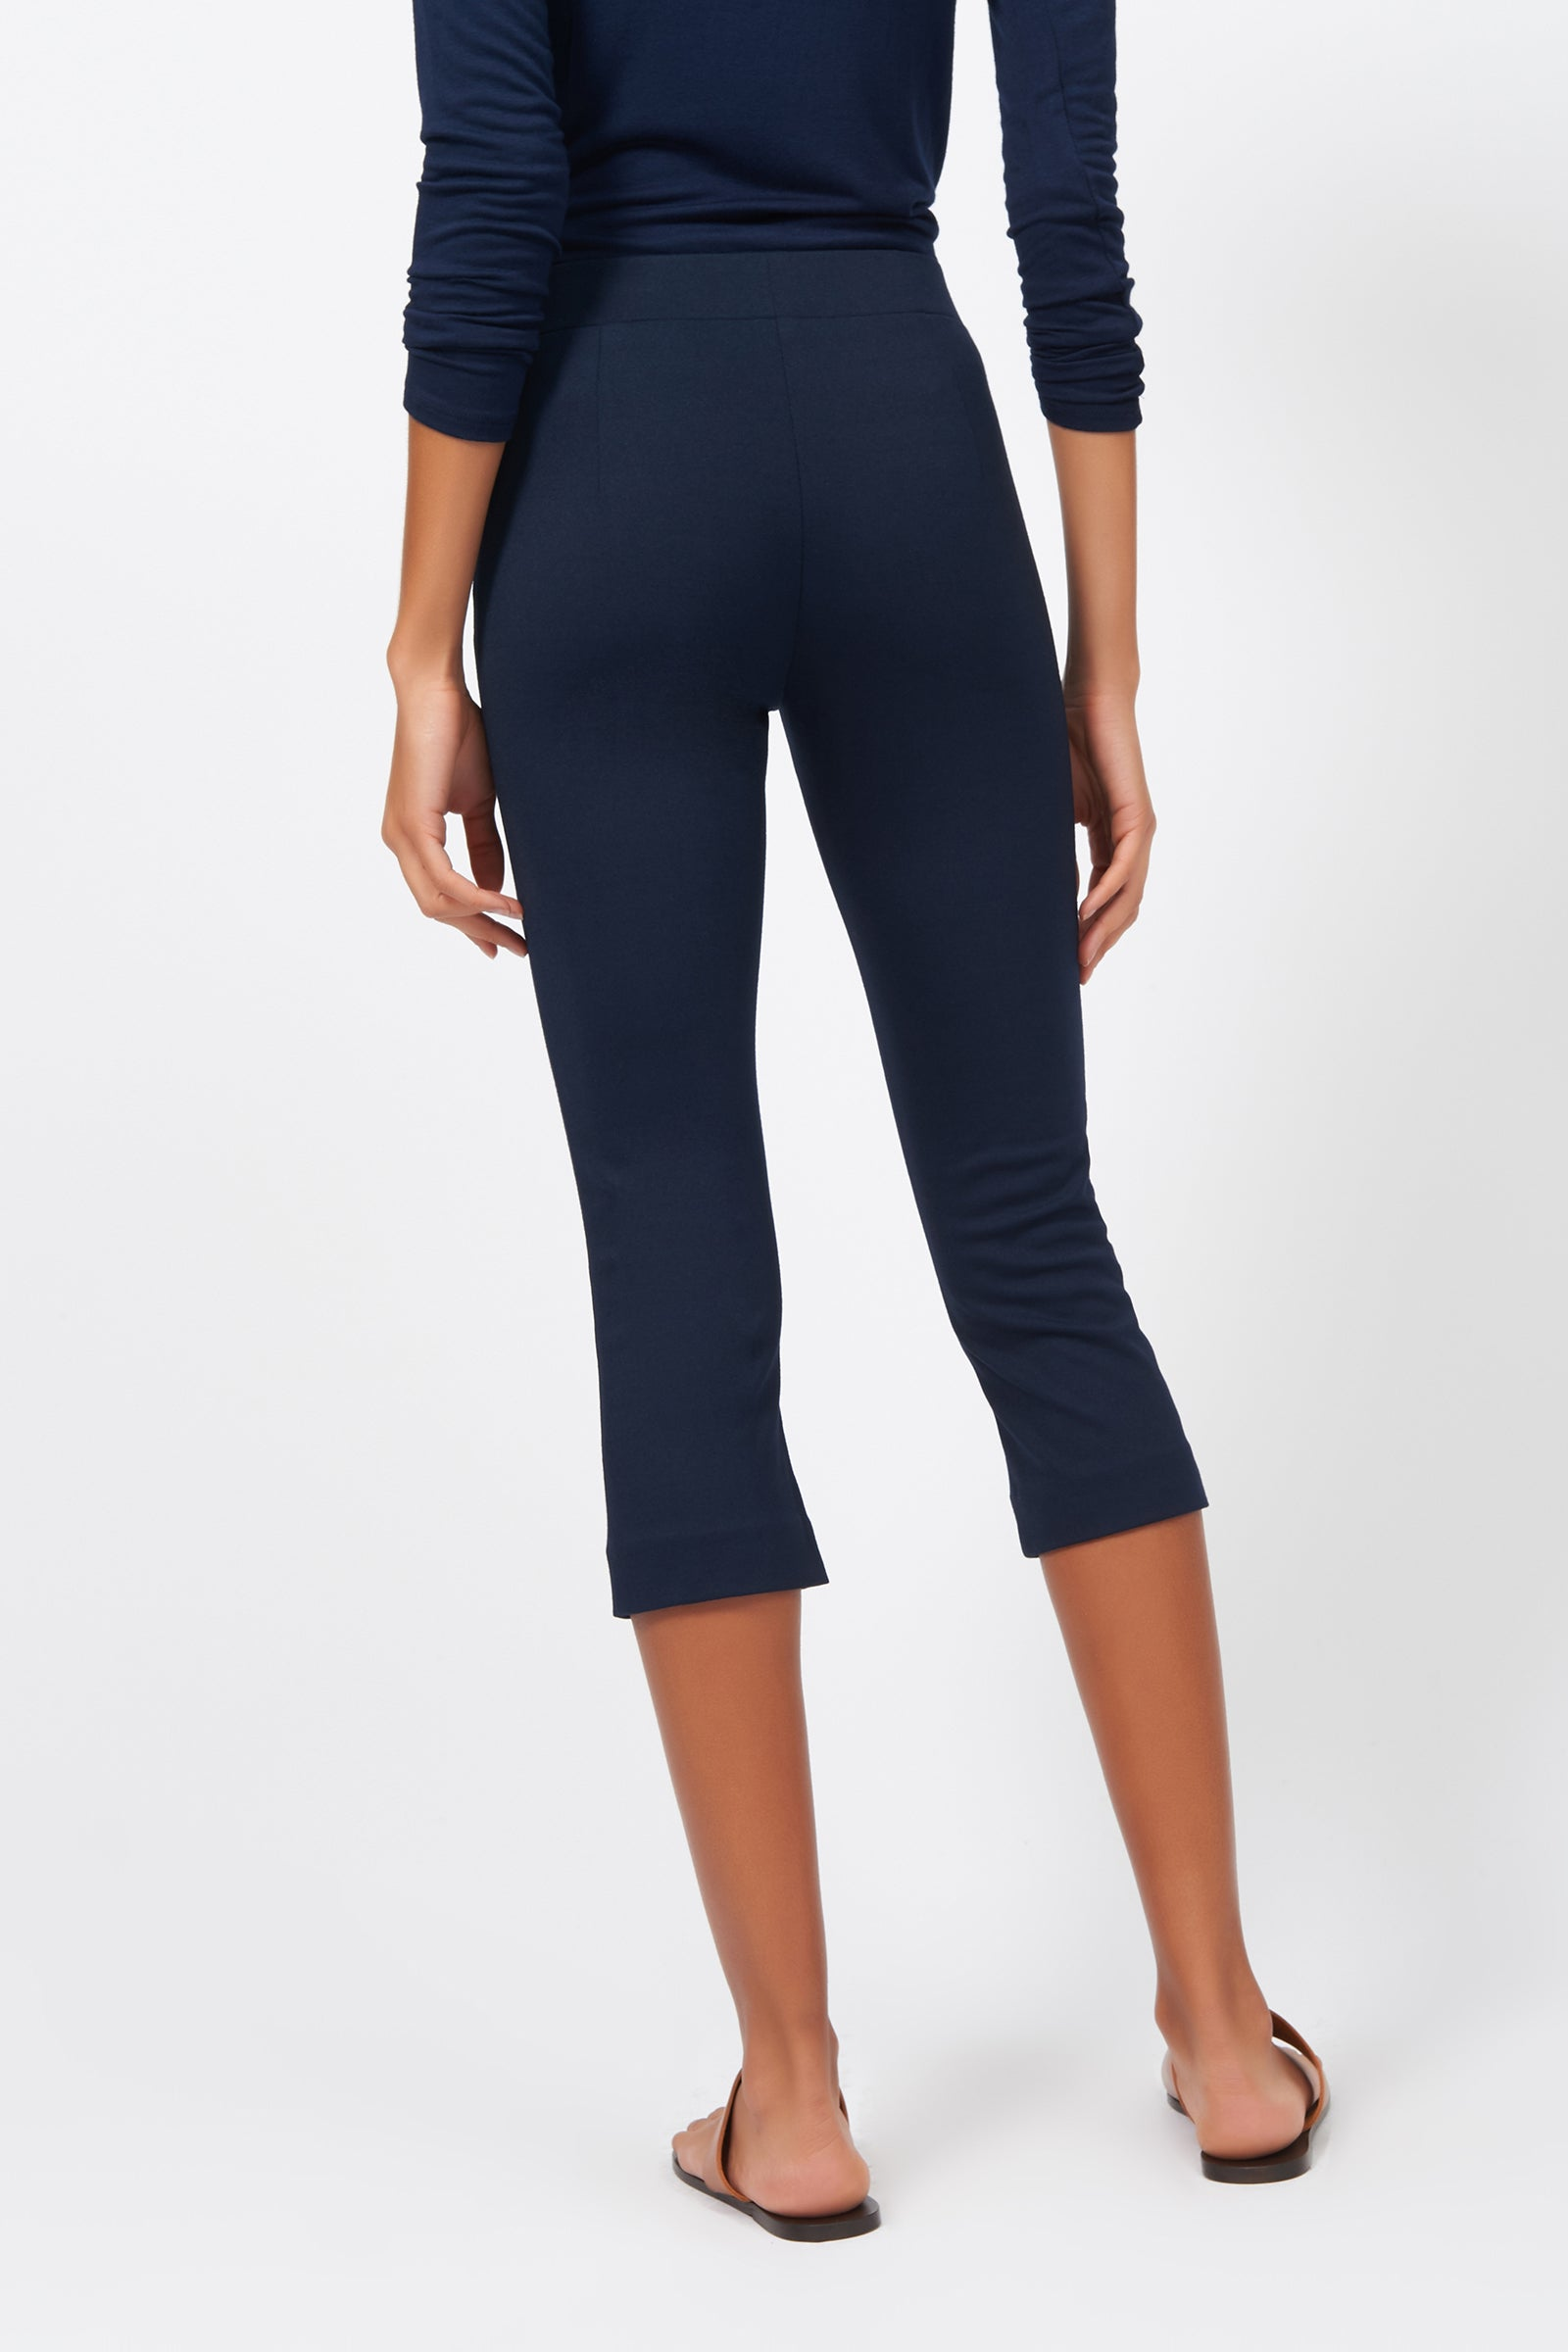 Kal Rieman Pintuck Ponte 3/4 Pant in Navy on Model Full Front Side View